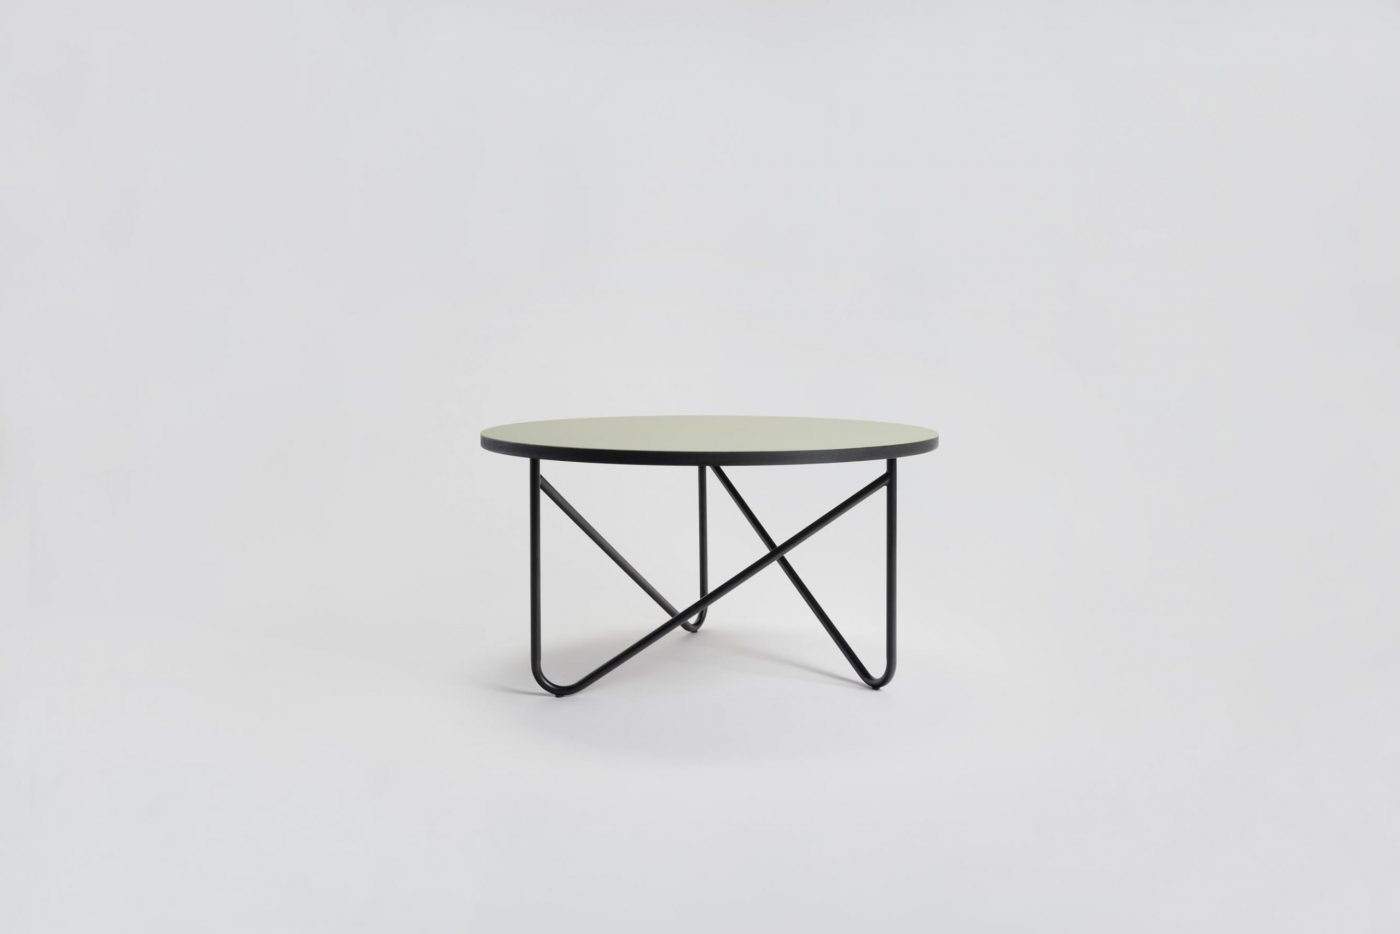 09 MYKILOS VVV TABLE BLACK GREEN ROSE  GRAY LINOLEUM scaled